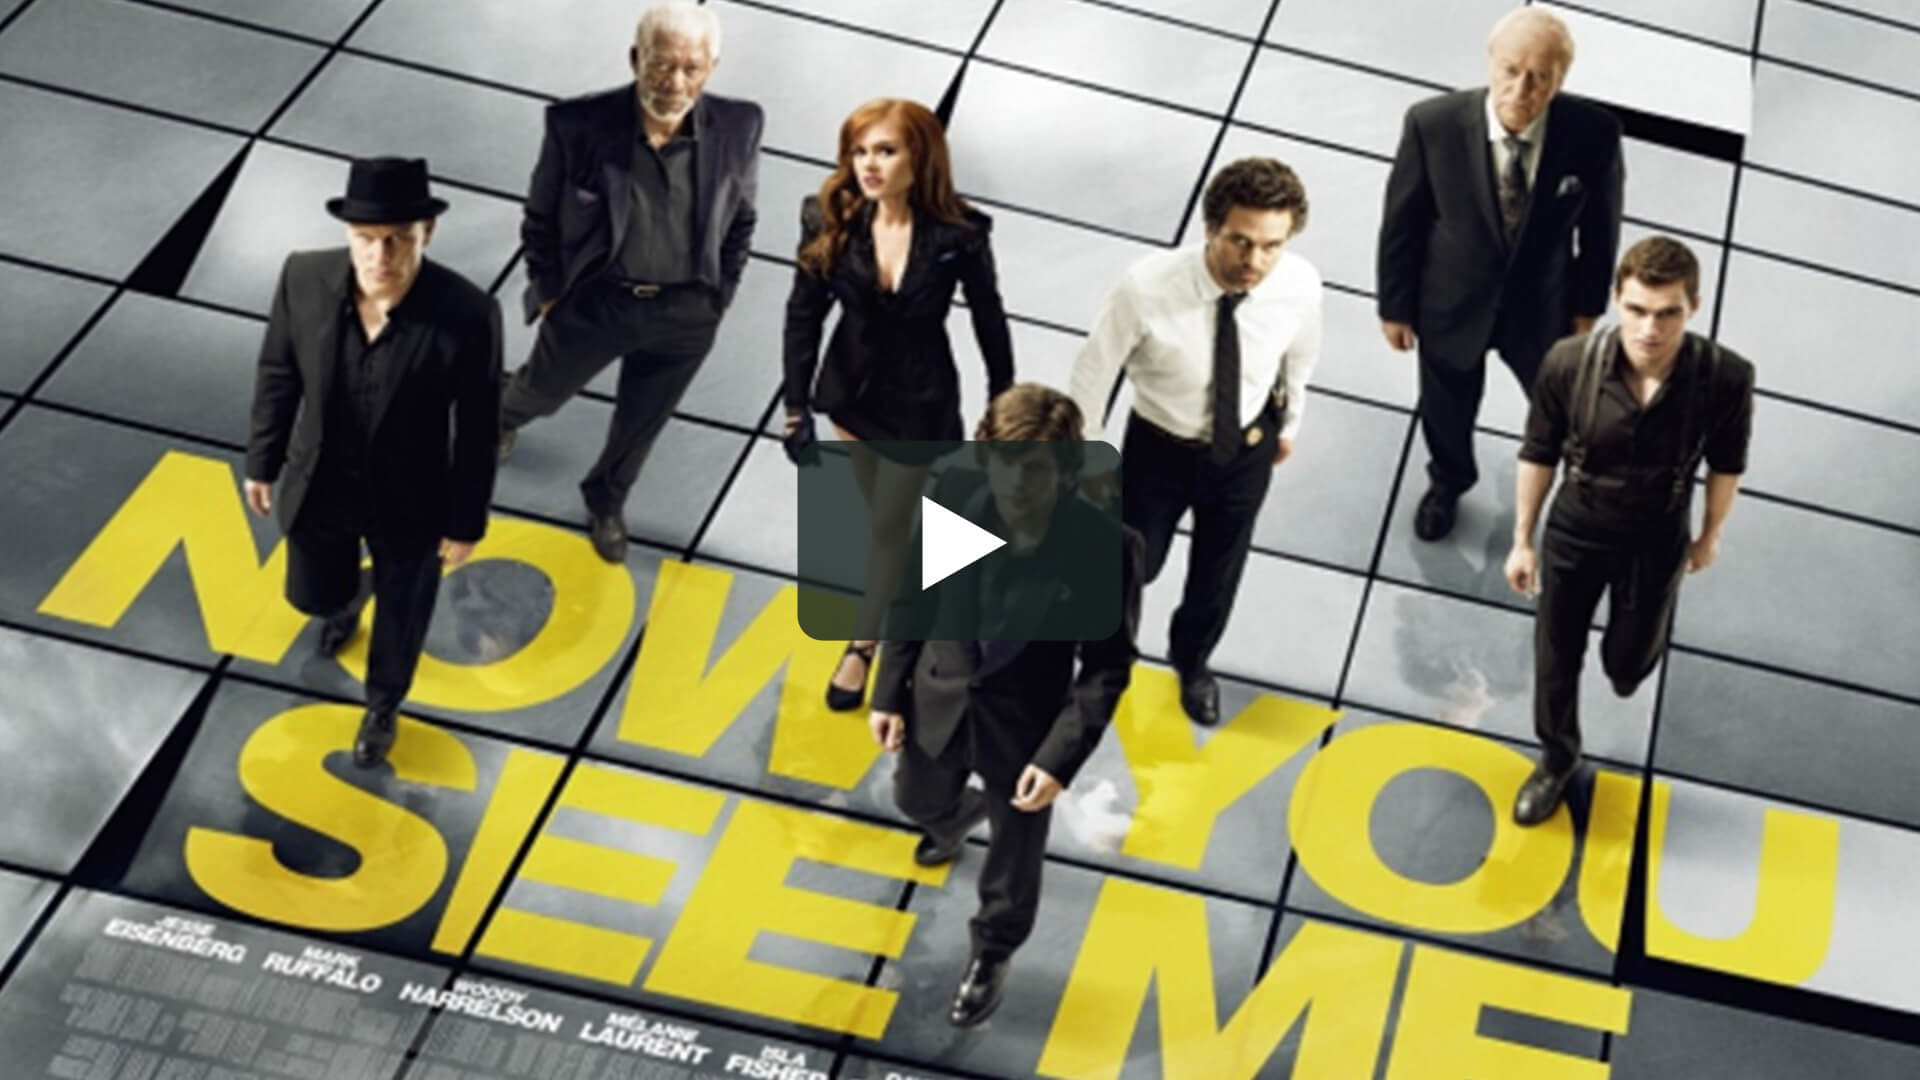 Now You See Me - 驚天魔盜團